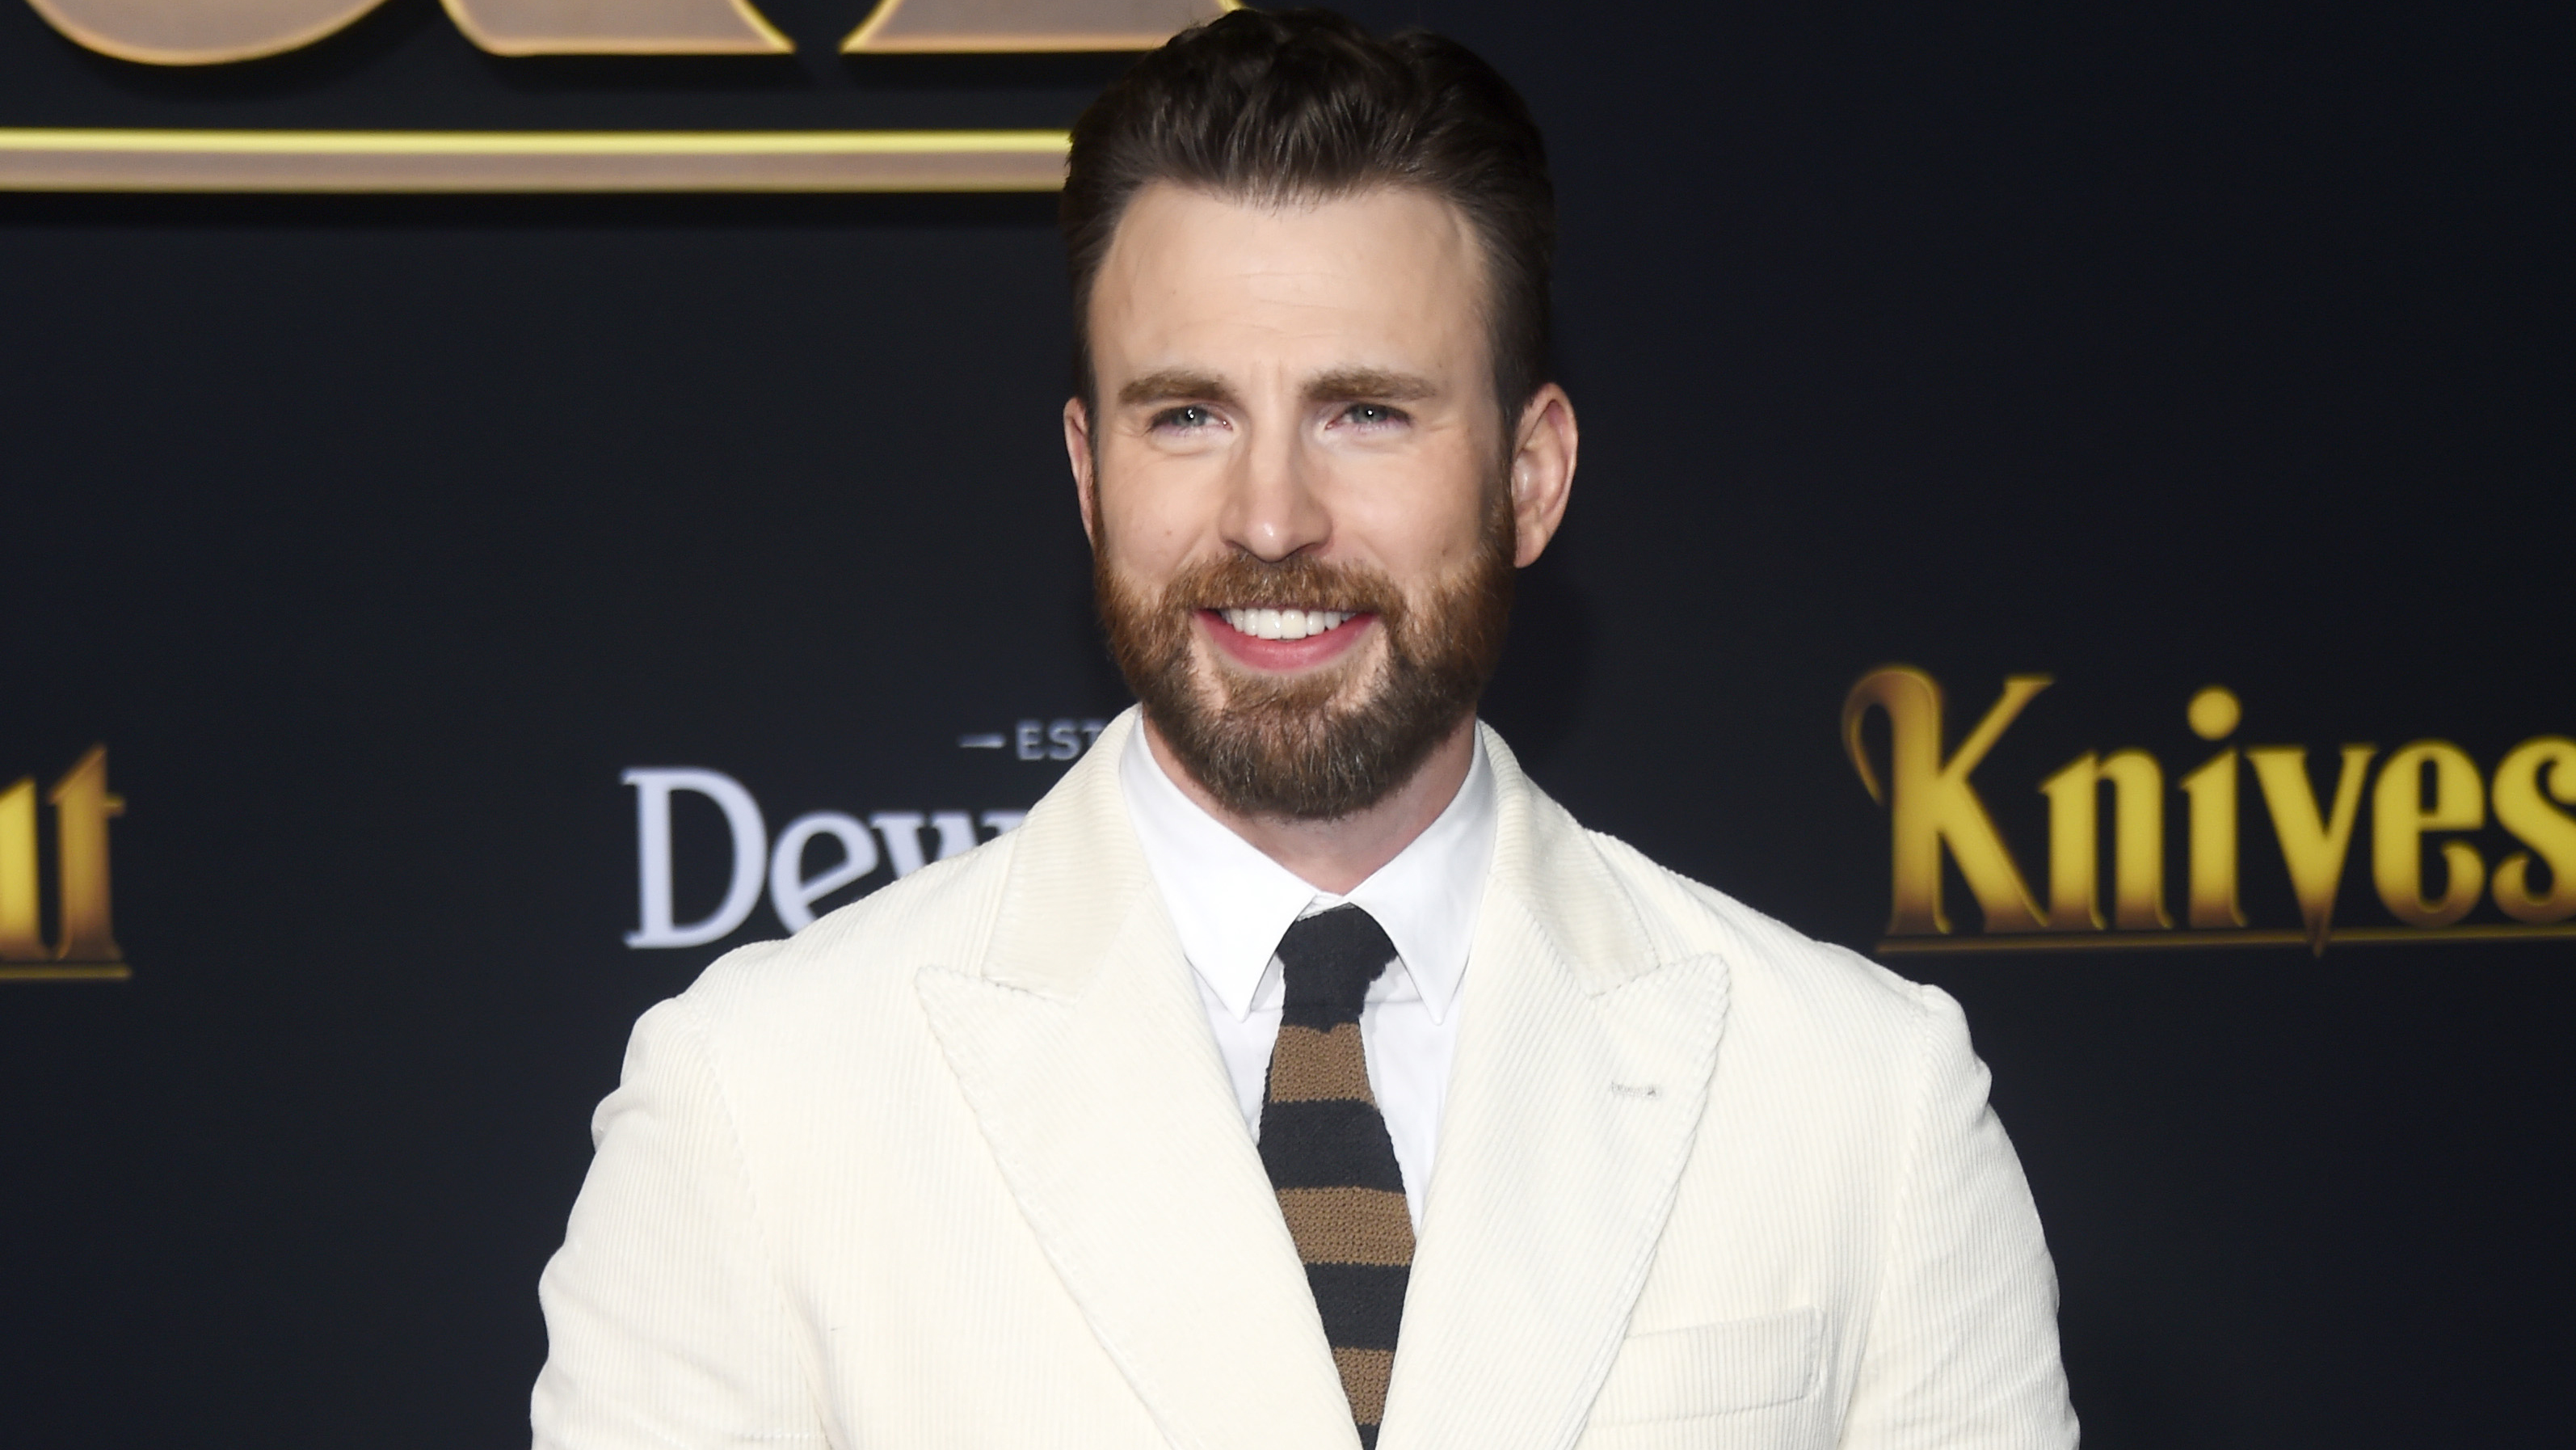 Chris Evans calls accidental NSFW photo leak 'embarrassing' thanks fans for 'support' – Fox News